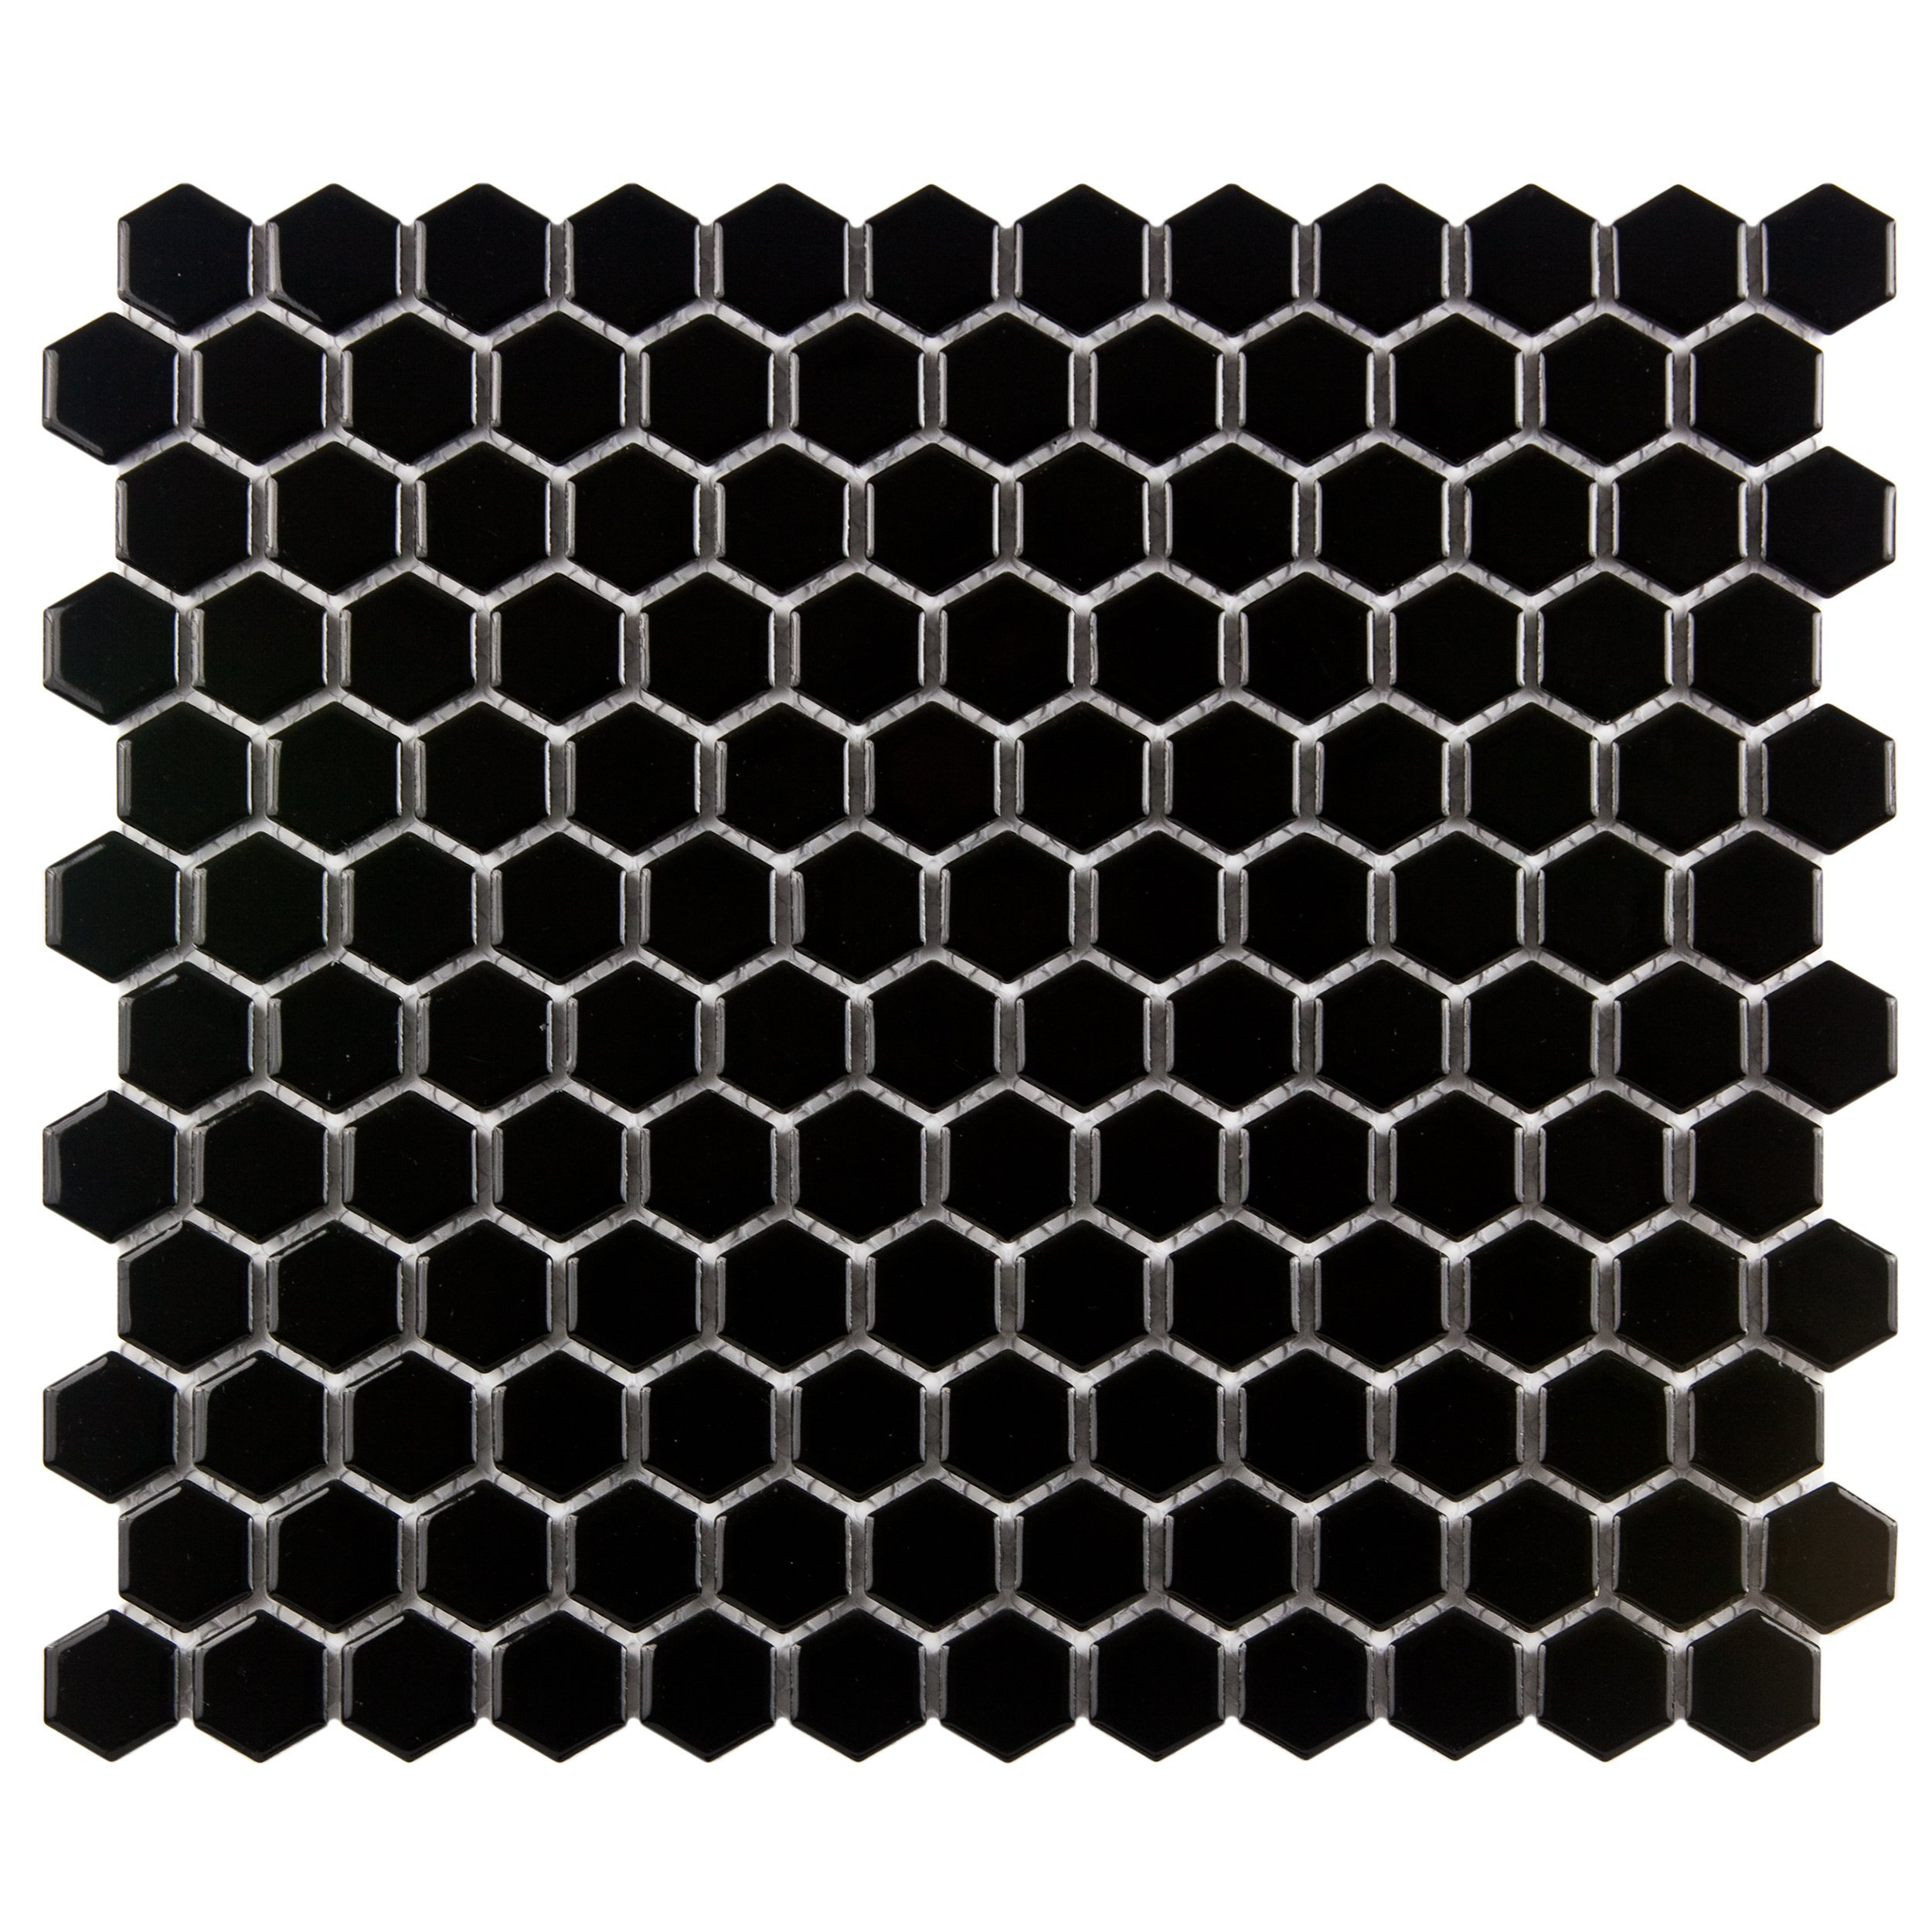 SomerTile FXLMHB Retro Hexagon Porcelain Floor and Wall Tile, 10.25'' x 11.75'', Black